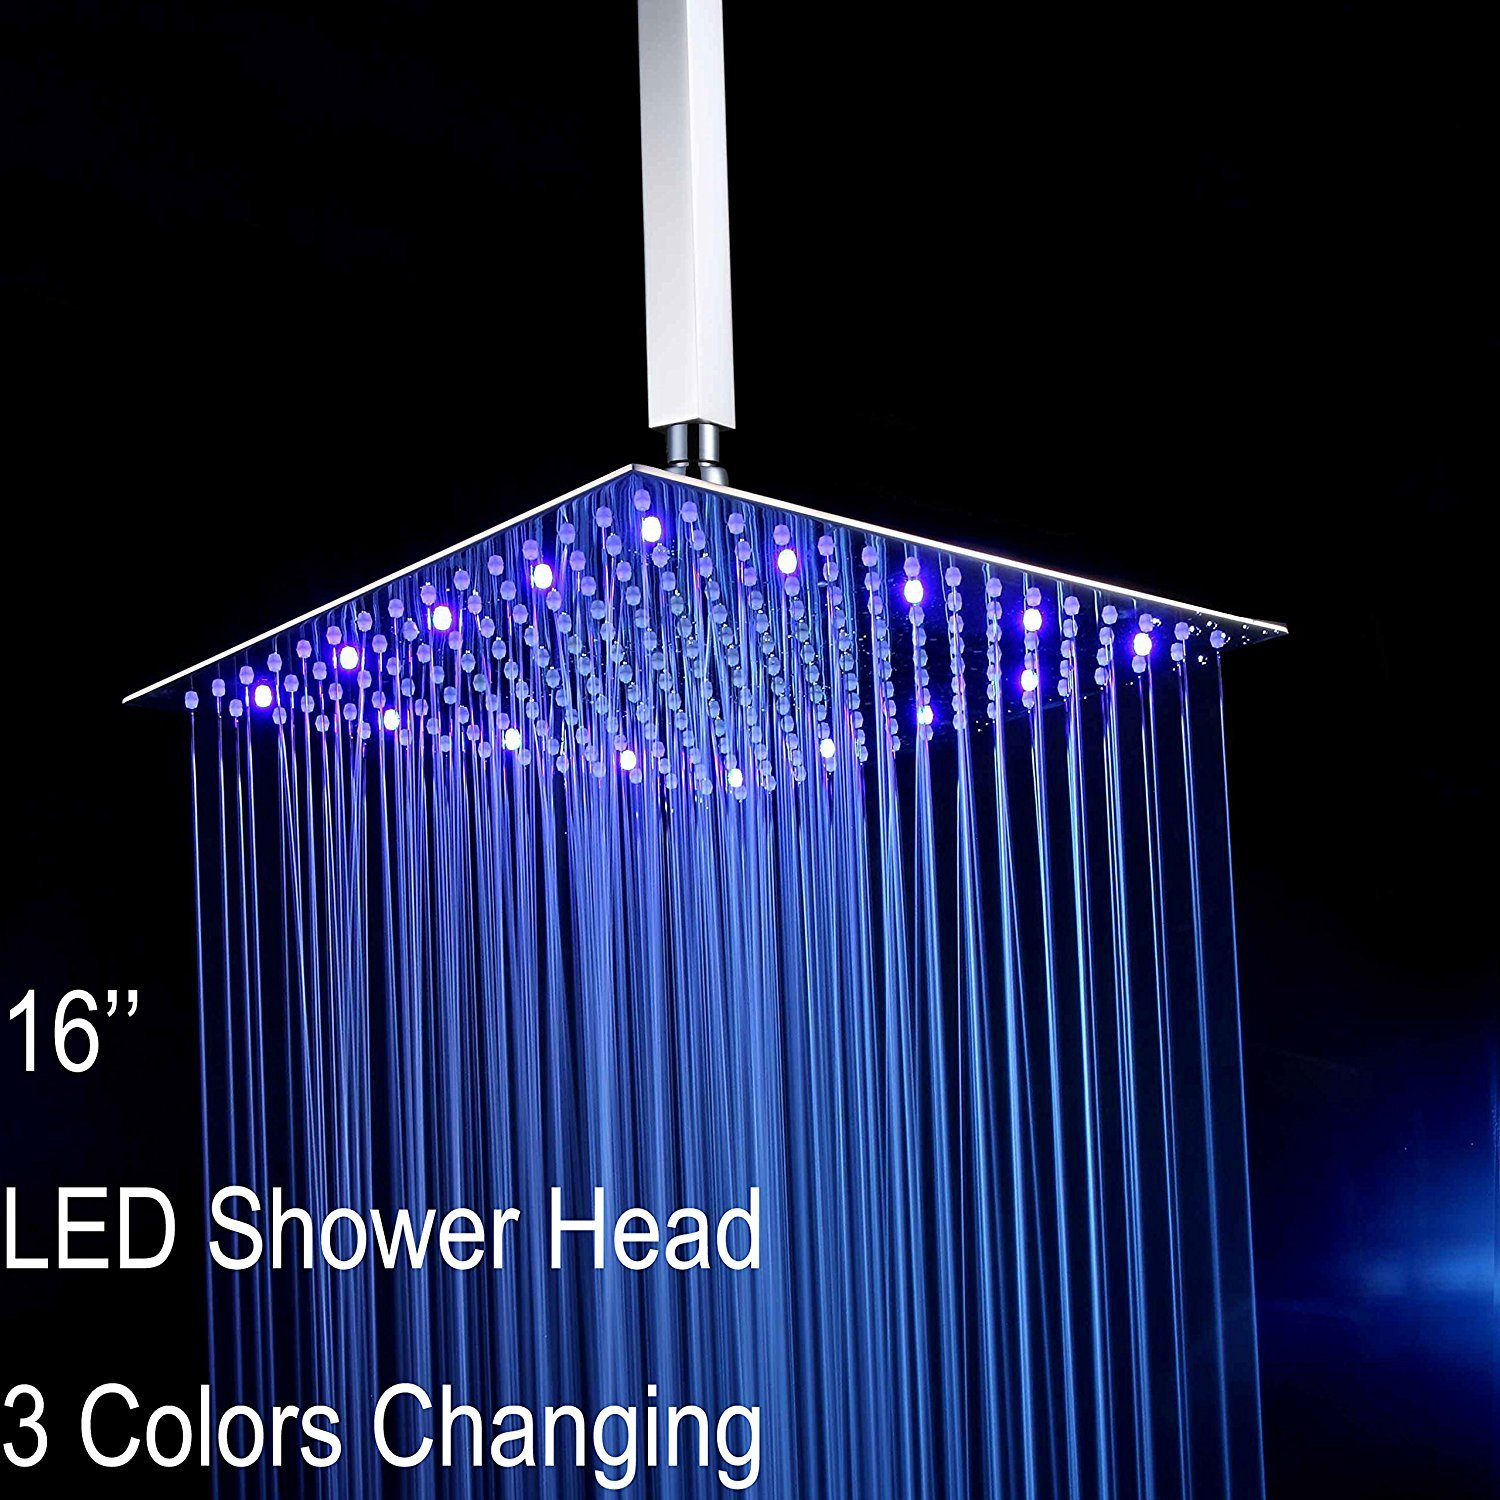 Fyeer 16'' LED Rainfall Shower Head Square, Ultra-thin Luxury Bathroom Showerhead Ceiling Mounted, 3-LAYER Brushed Nickel 304 Stainless Steel, Temperature Sensor 3 Colors Chaning by Fyeer (Image #2)